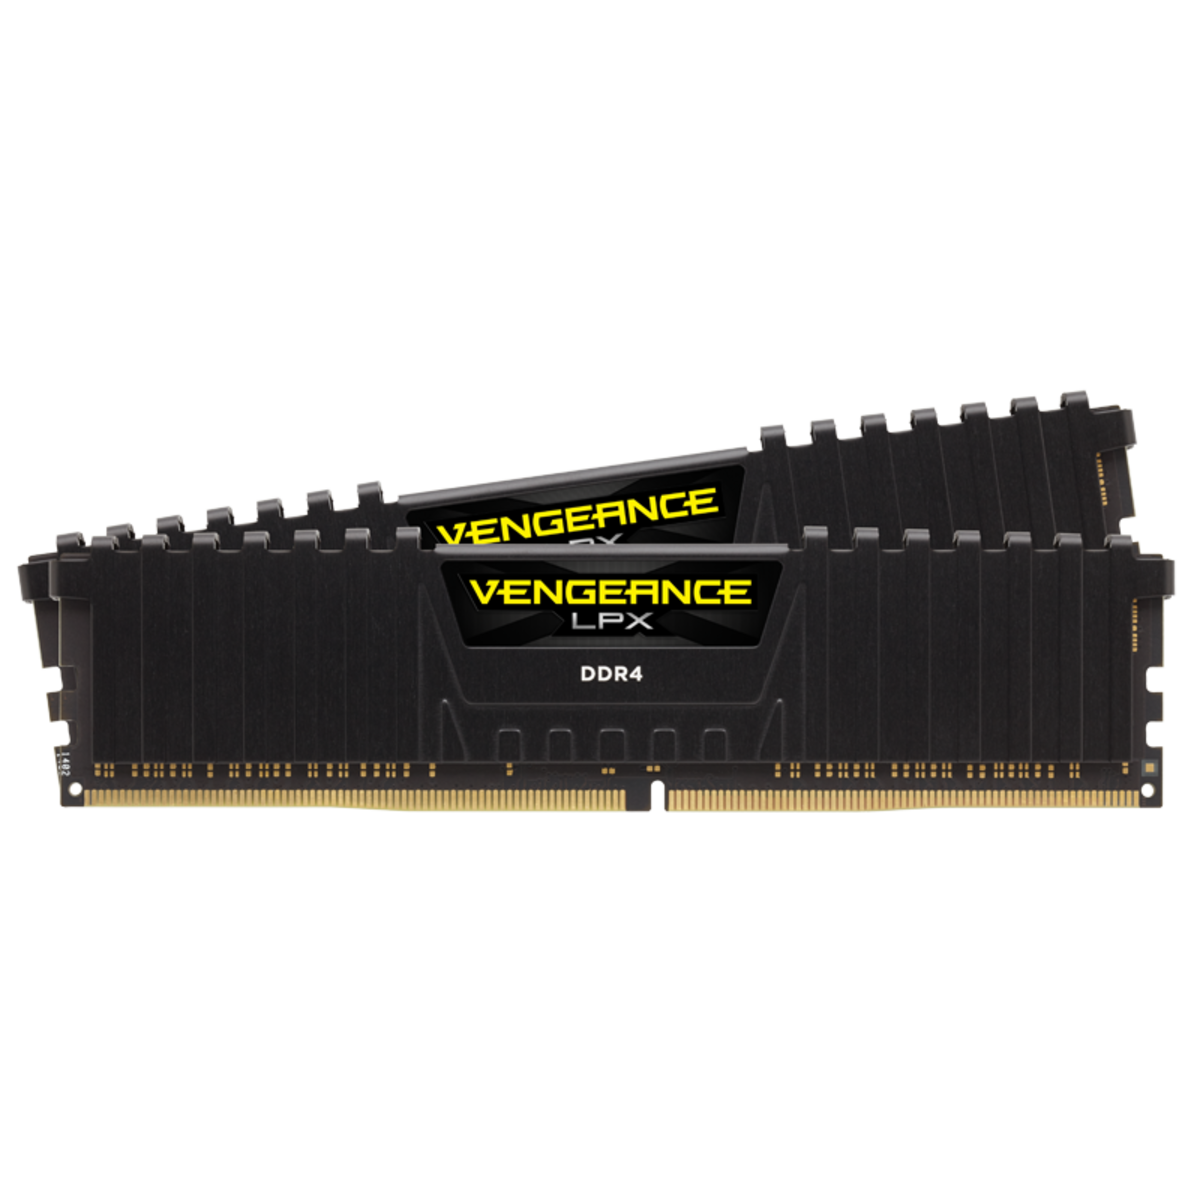 Corsair Vengeance LPX 16 GB 3600Mhz DDR4 Desktop Memory